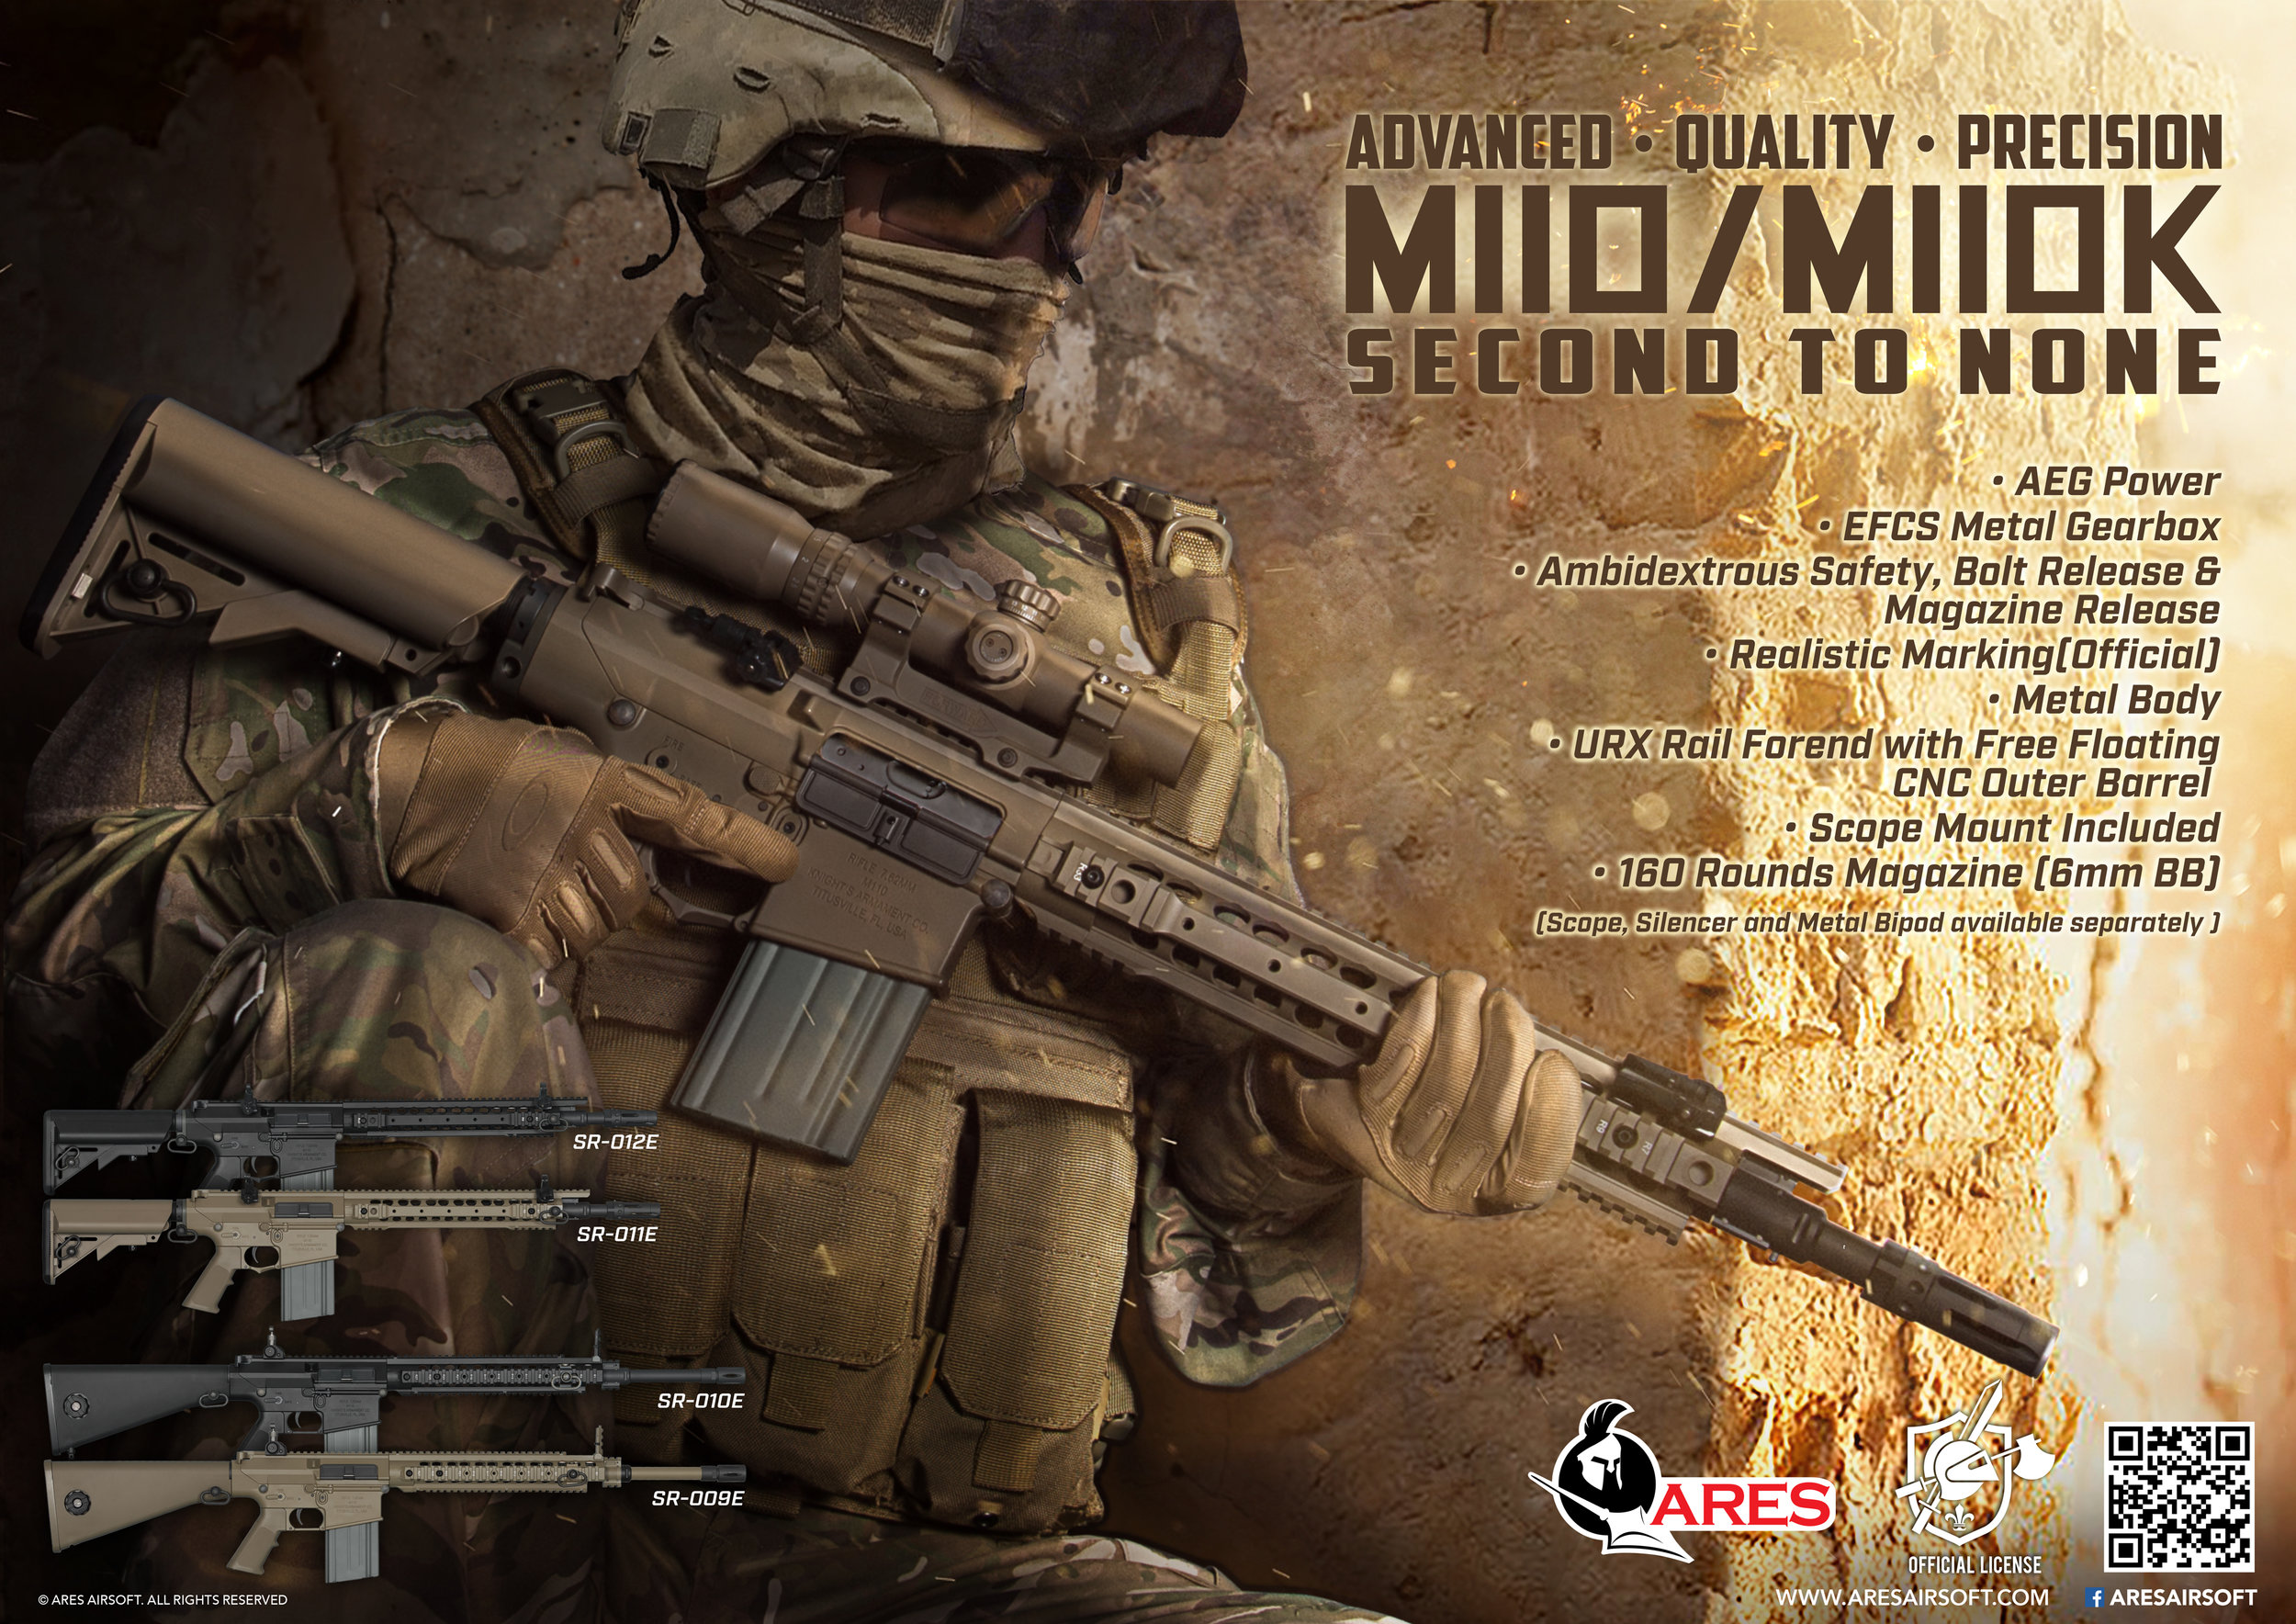 M110K POSTER